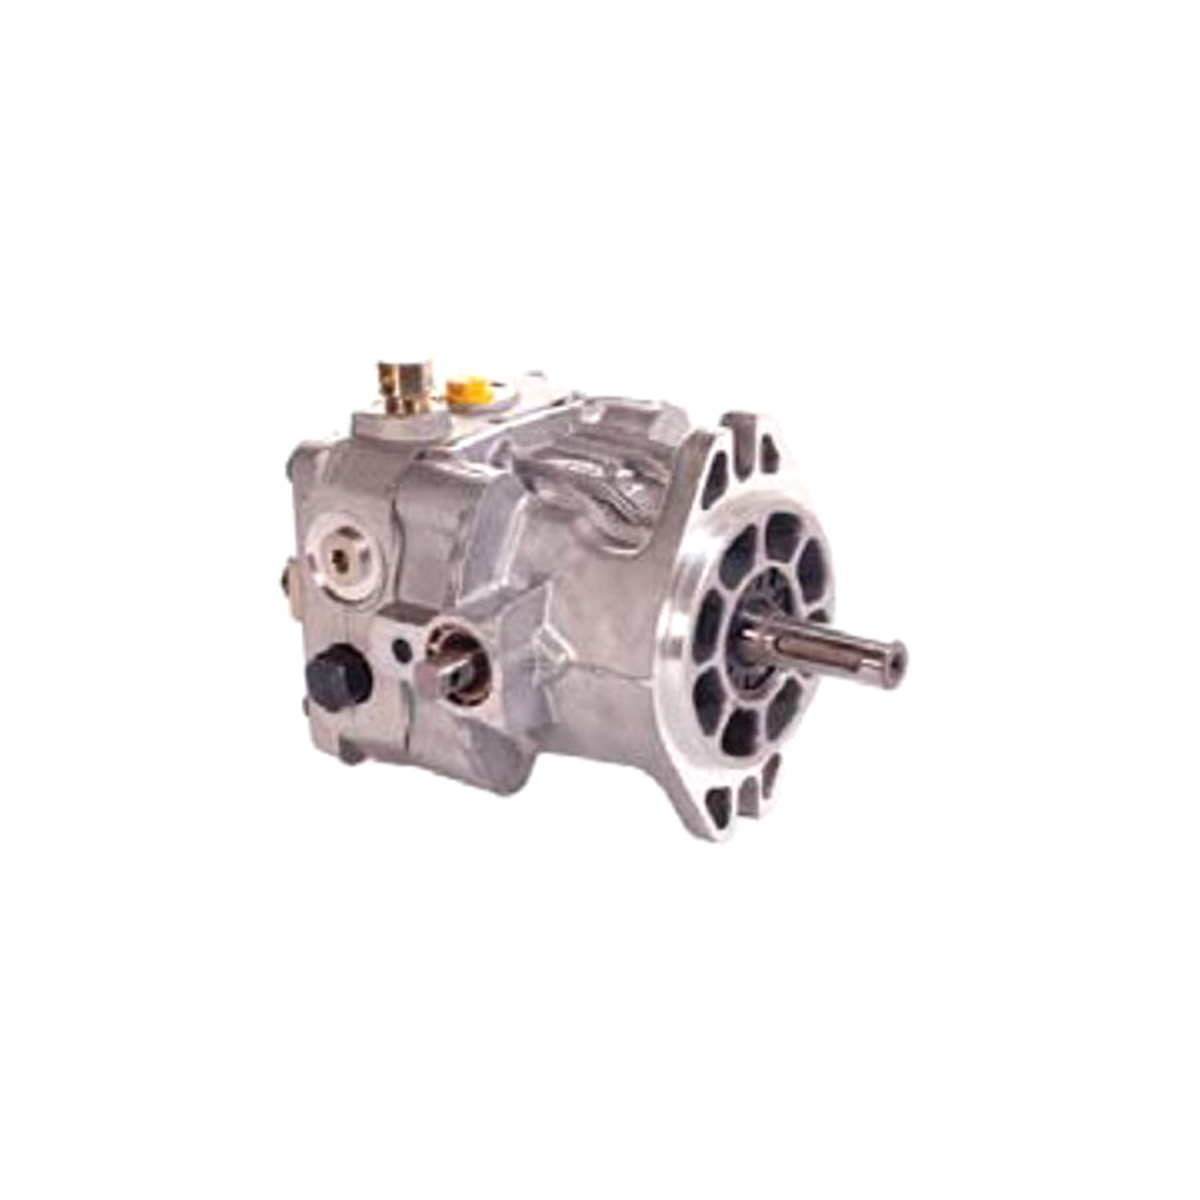 200310 Dixie Chopper Hydro-Gear Pump 12cc Rh